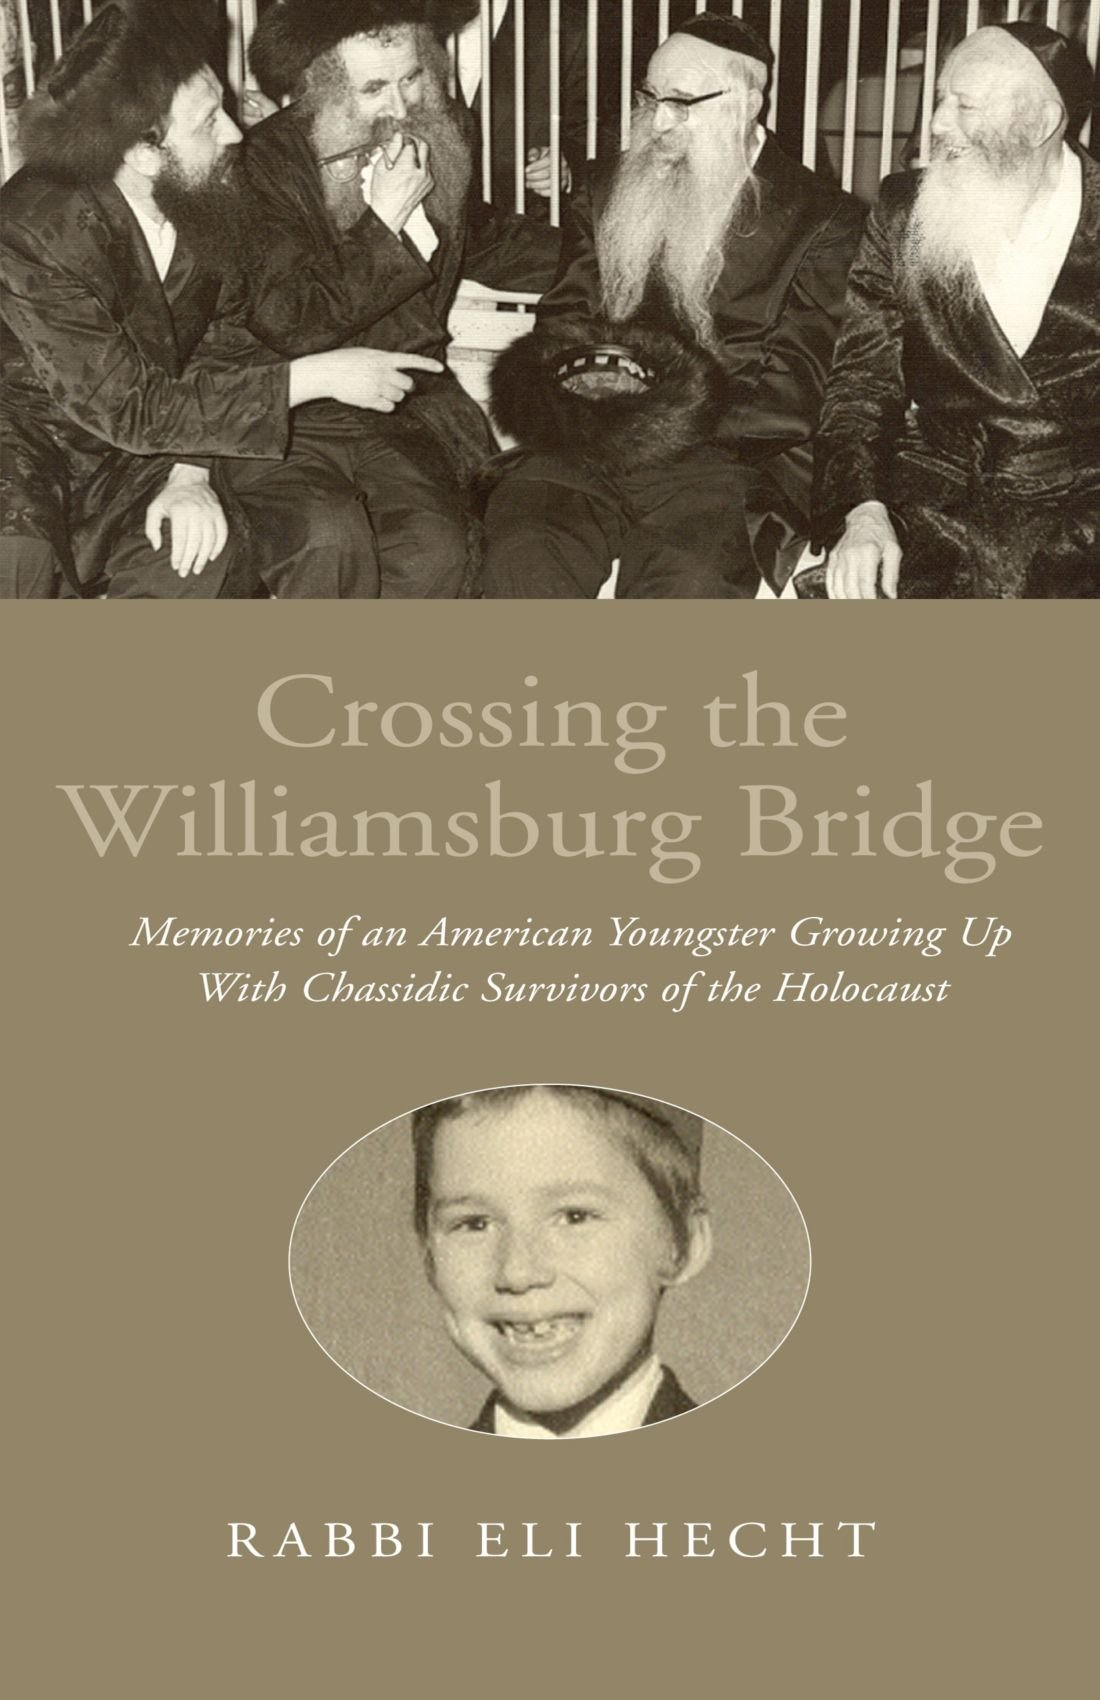 Download Crossing the Williamsburg Bridge: Memories of an American Youngster Growing Up With Chassidic Survivors of the Holocaust pdf